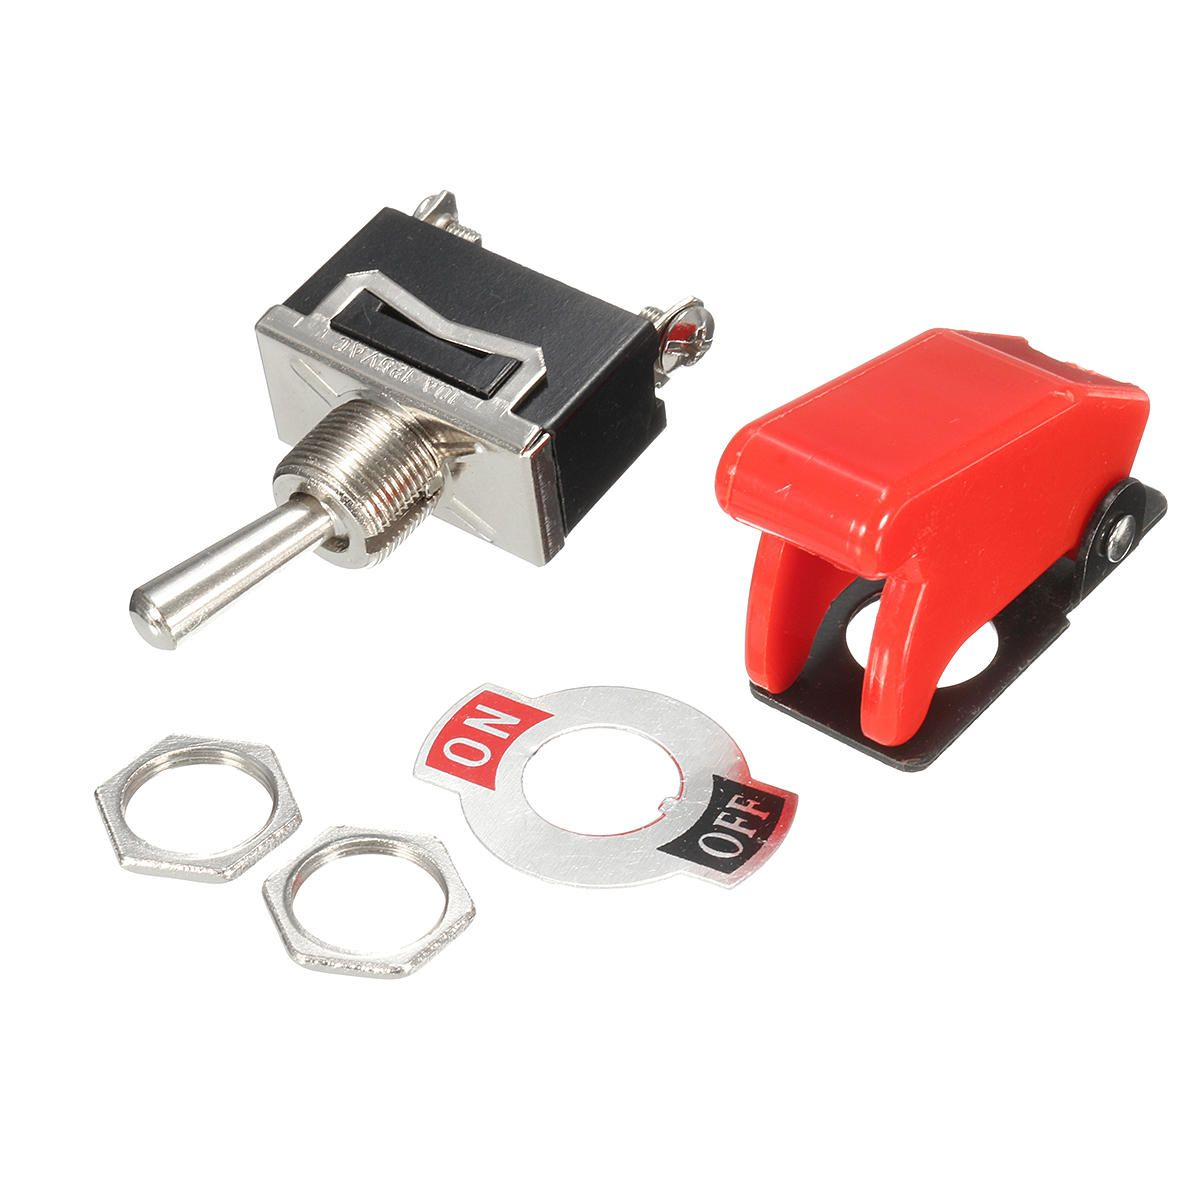 Excellway 12v Heavy Duty Toggle Switch Flick On Off Car Boat Light Switch Spst With Missile Cover Boat Lights Light Switch Toggle Switch